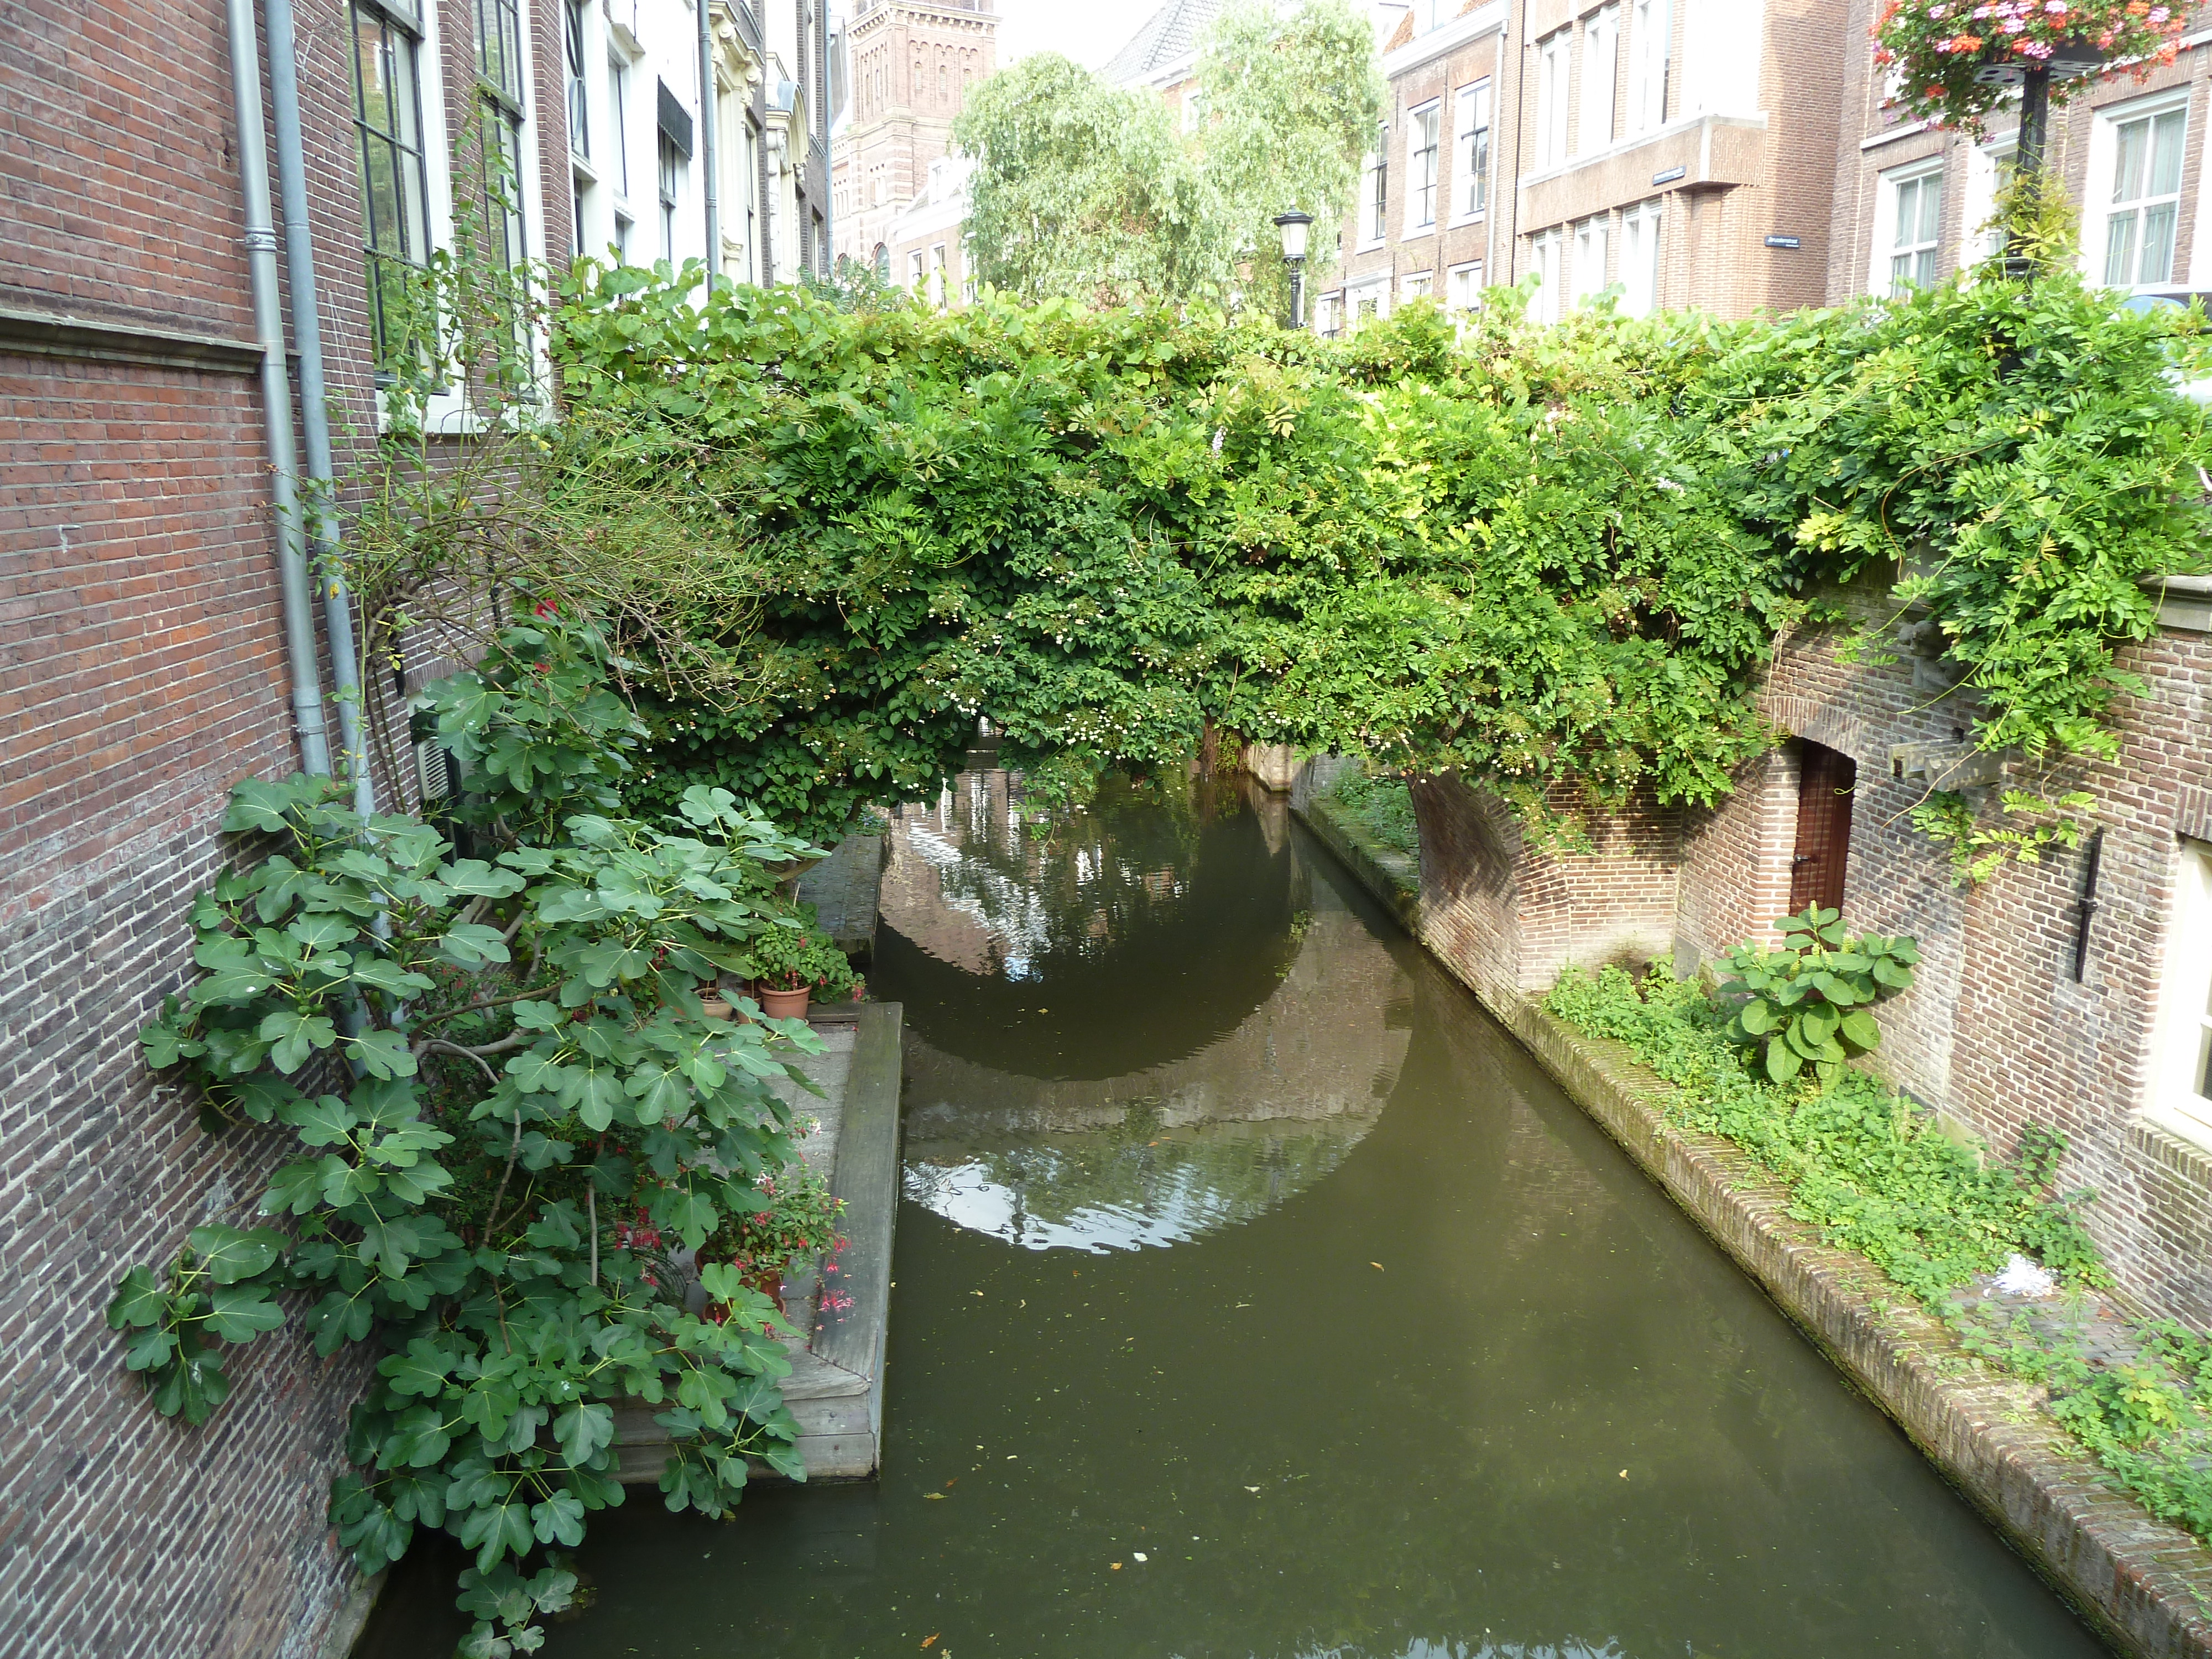 Charmant petit canal